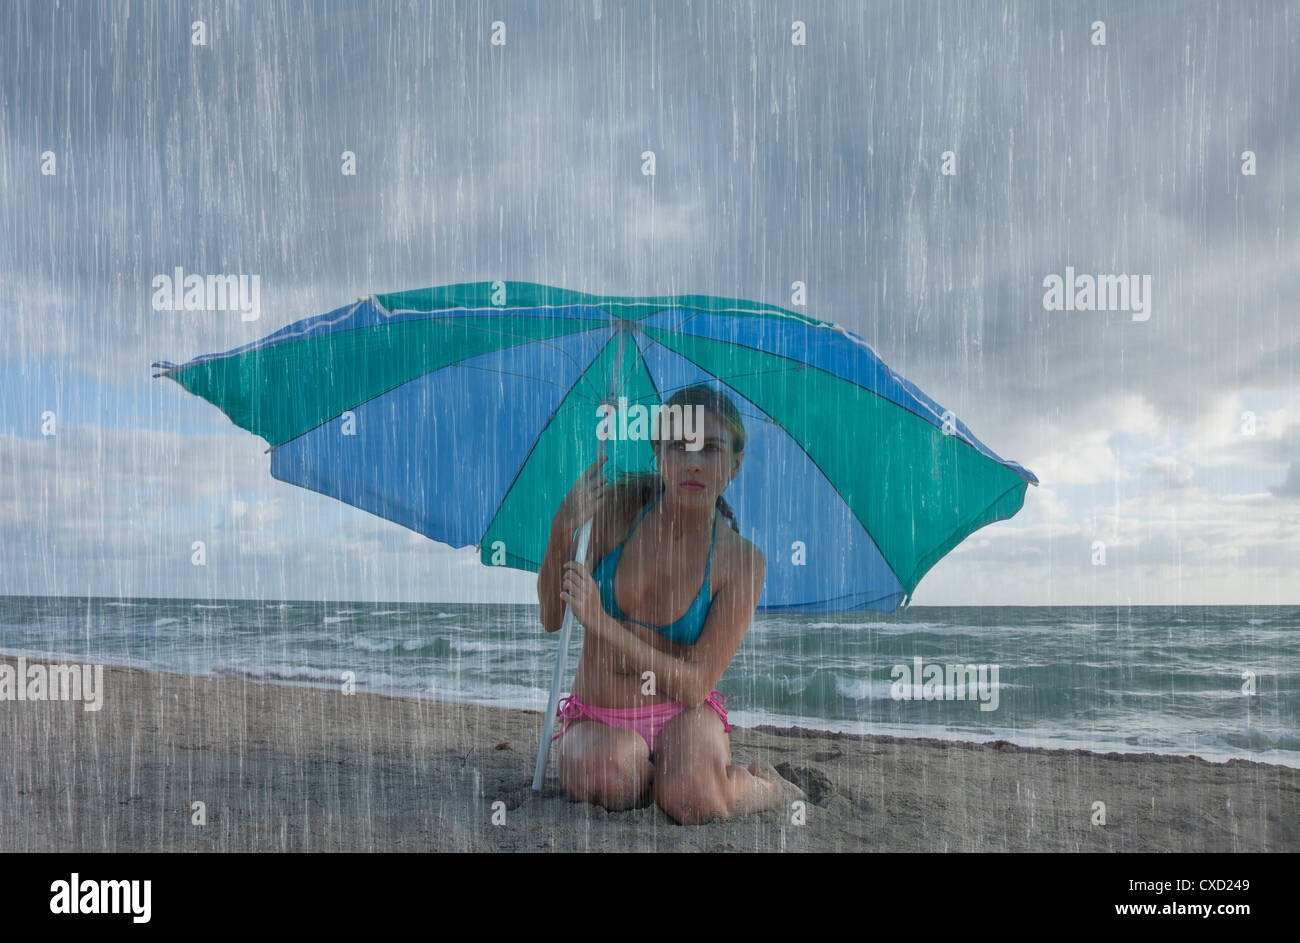 Woman on the beach in a rainy day, Florida, United States of America, North America - Stock Image